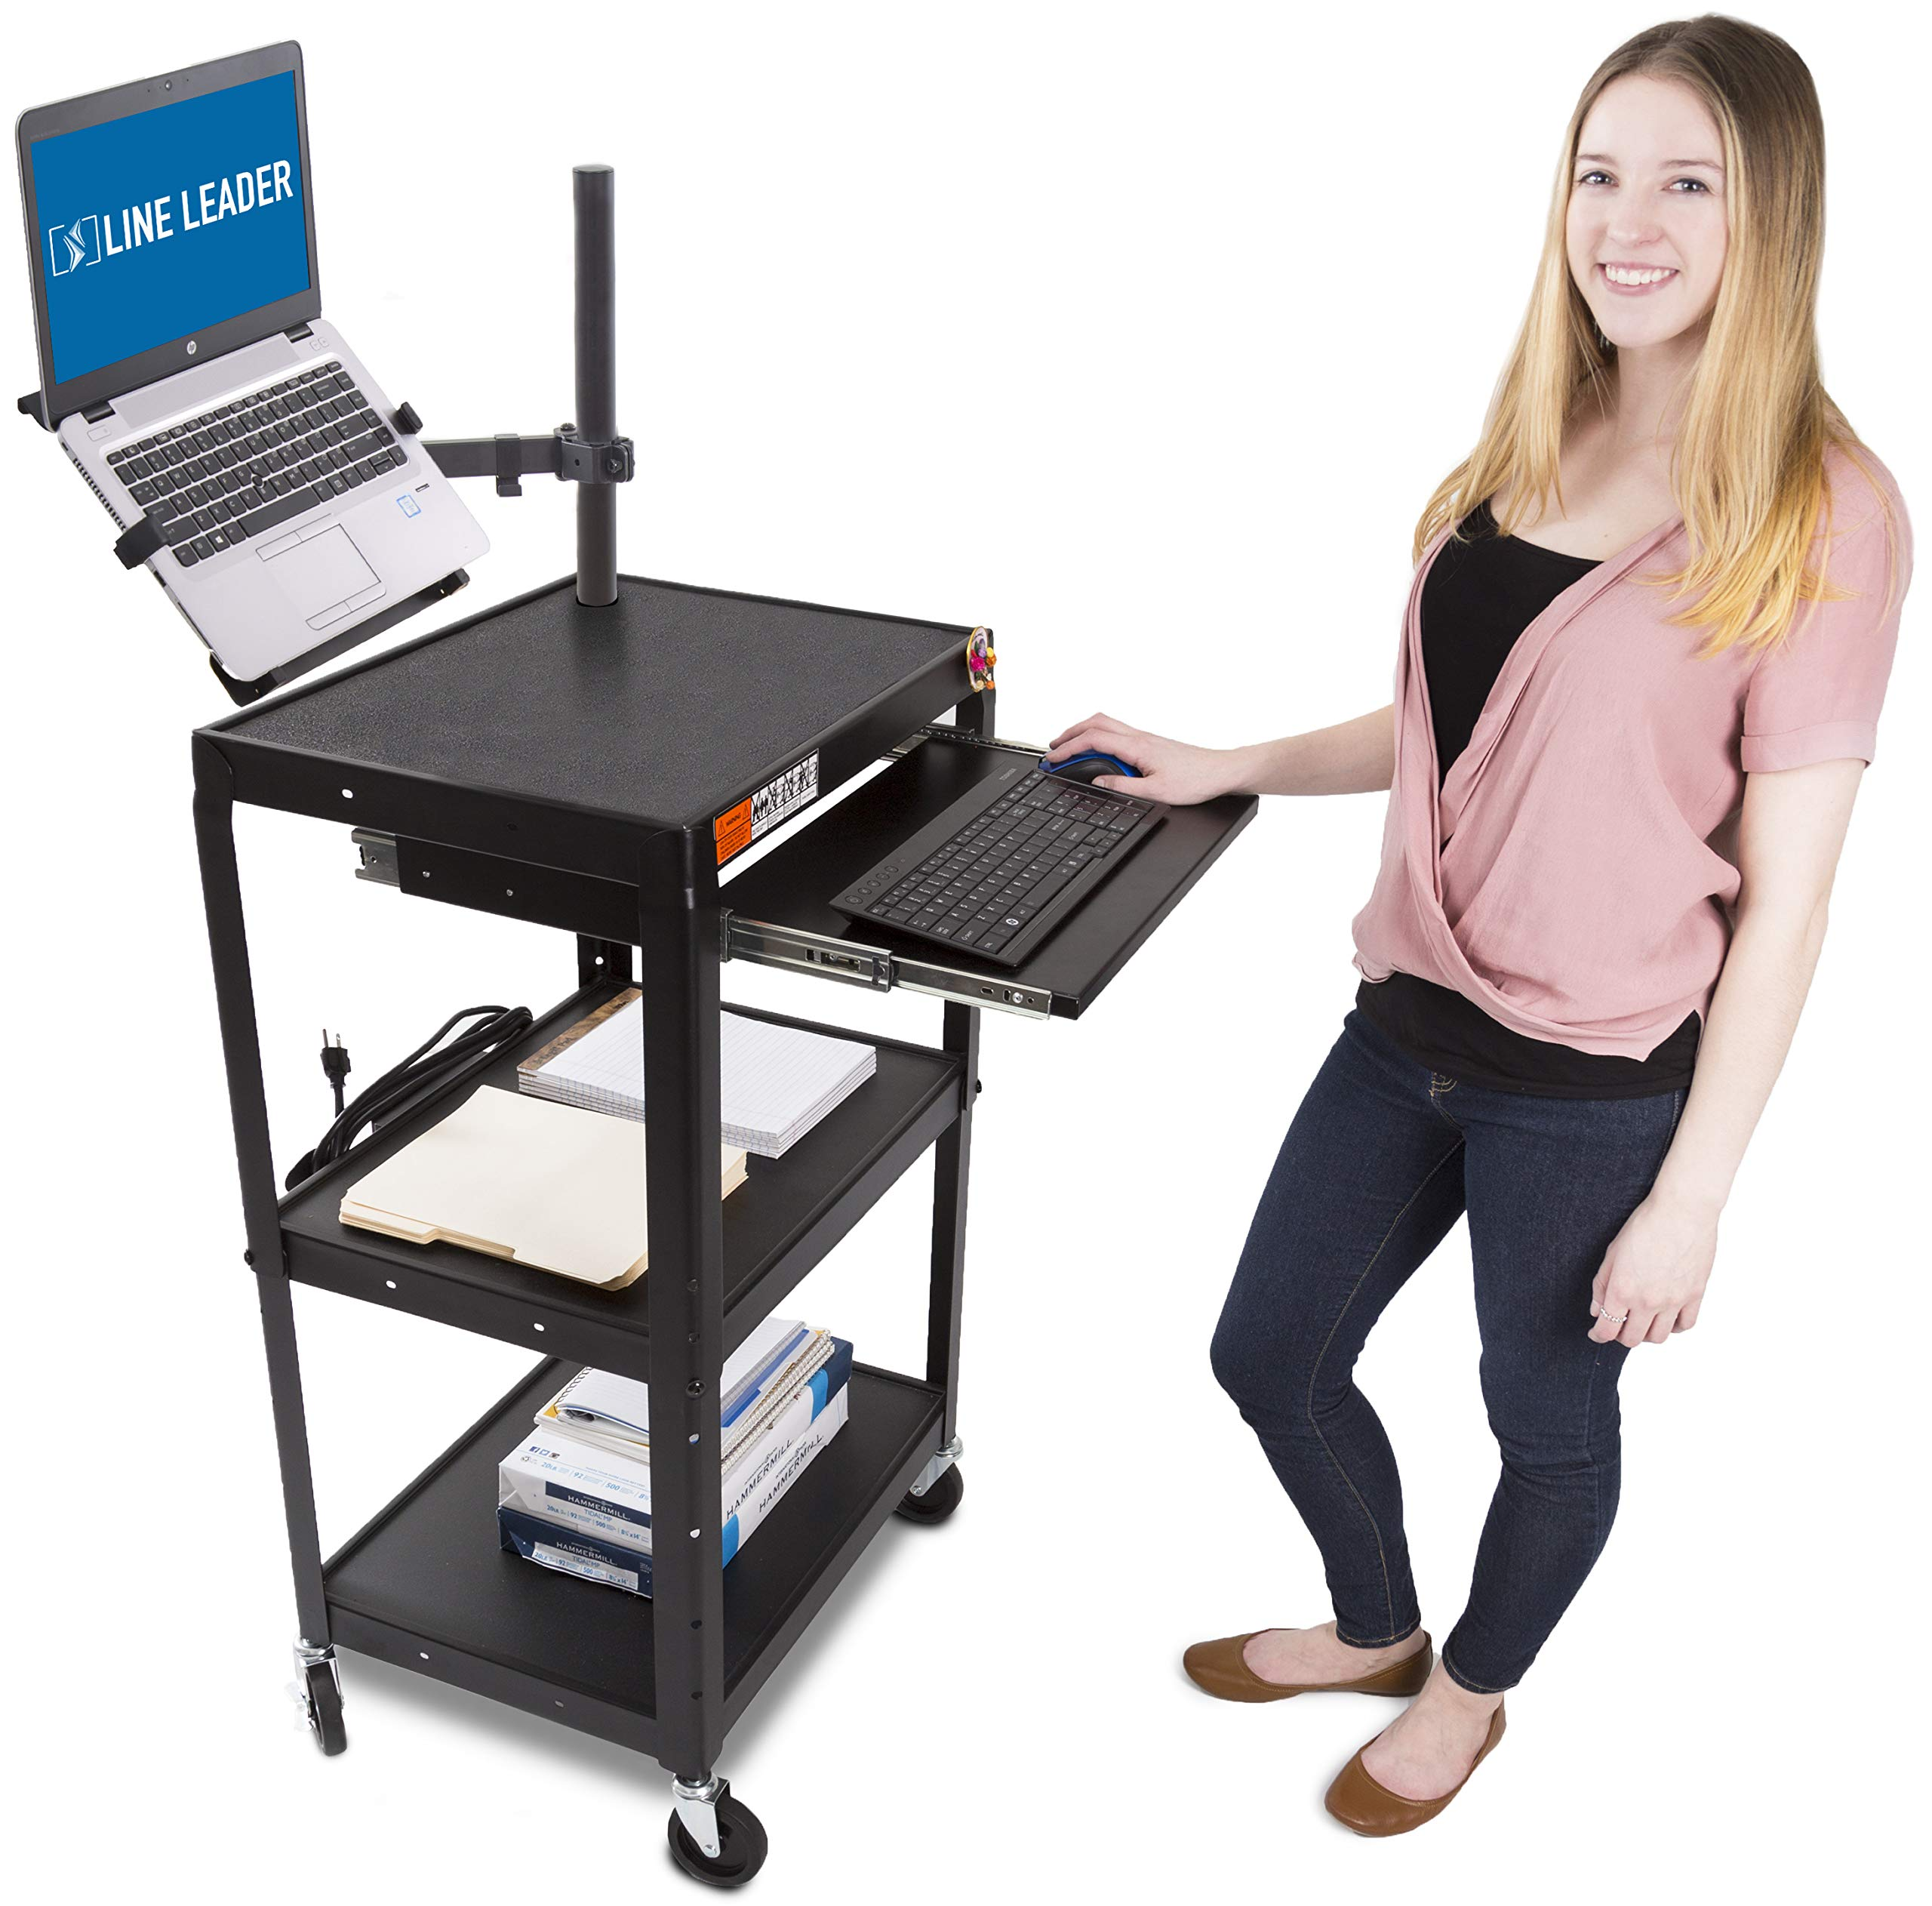 Line Leader AV Cart with Keyboard Tray and Laptop Stand - Mobile Workstation with Laptop Mount - Take Your Office On-The-Go with Our Stand Up Computer Cart (Black / 24 x 18) by Stand Steady